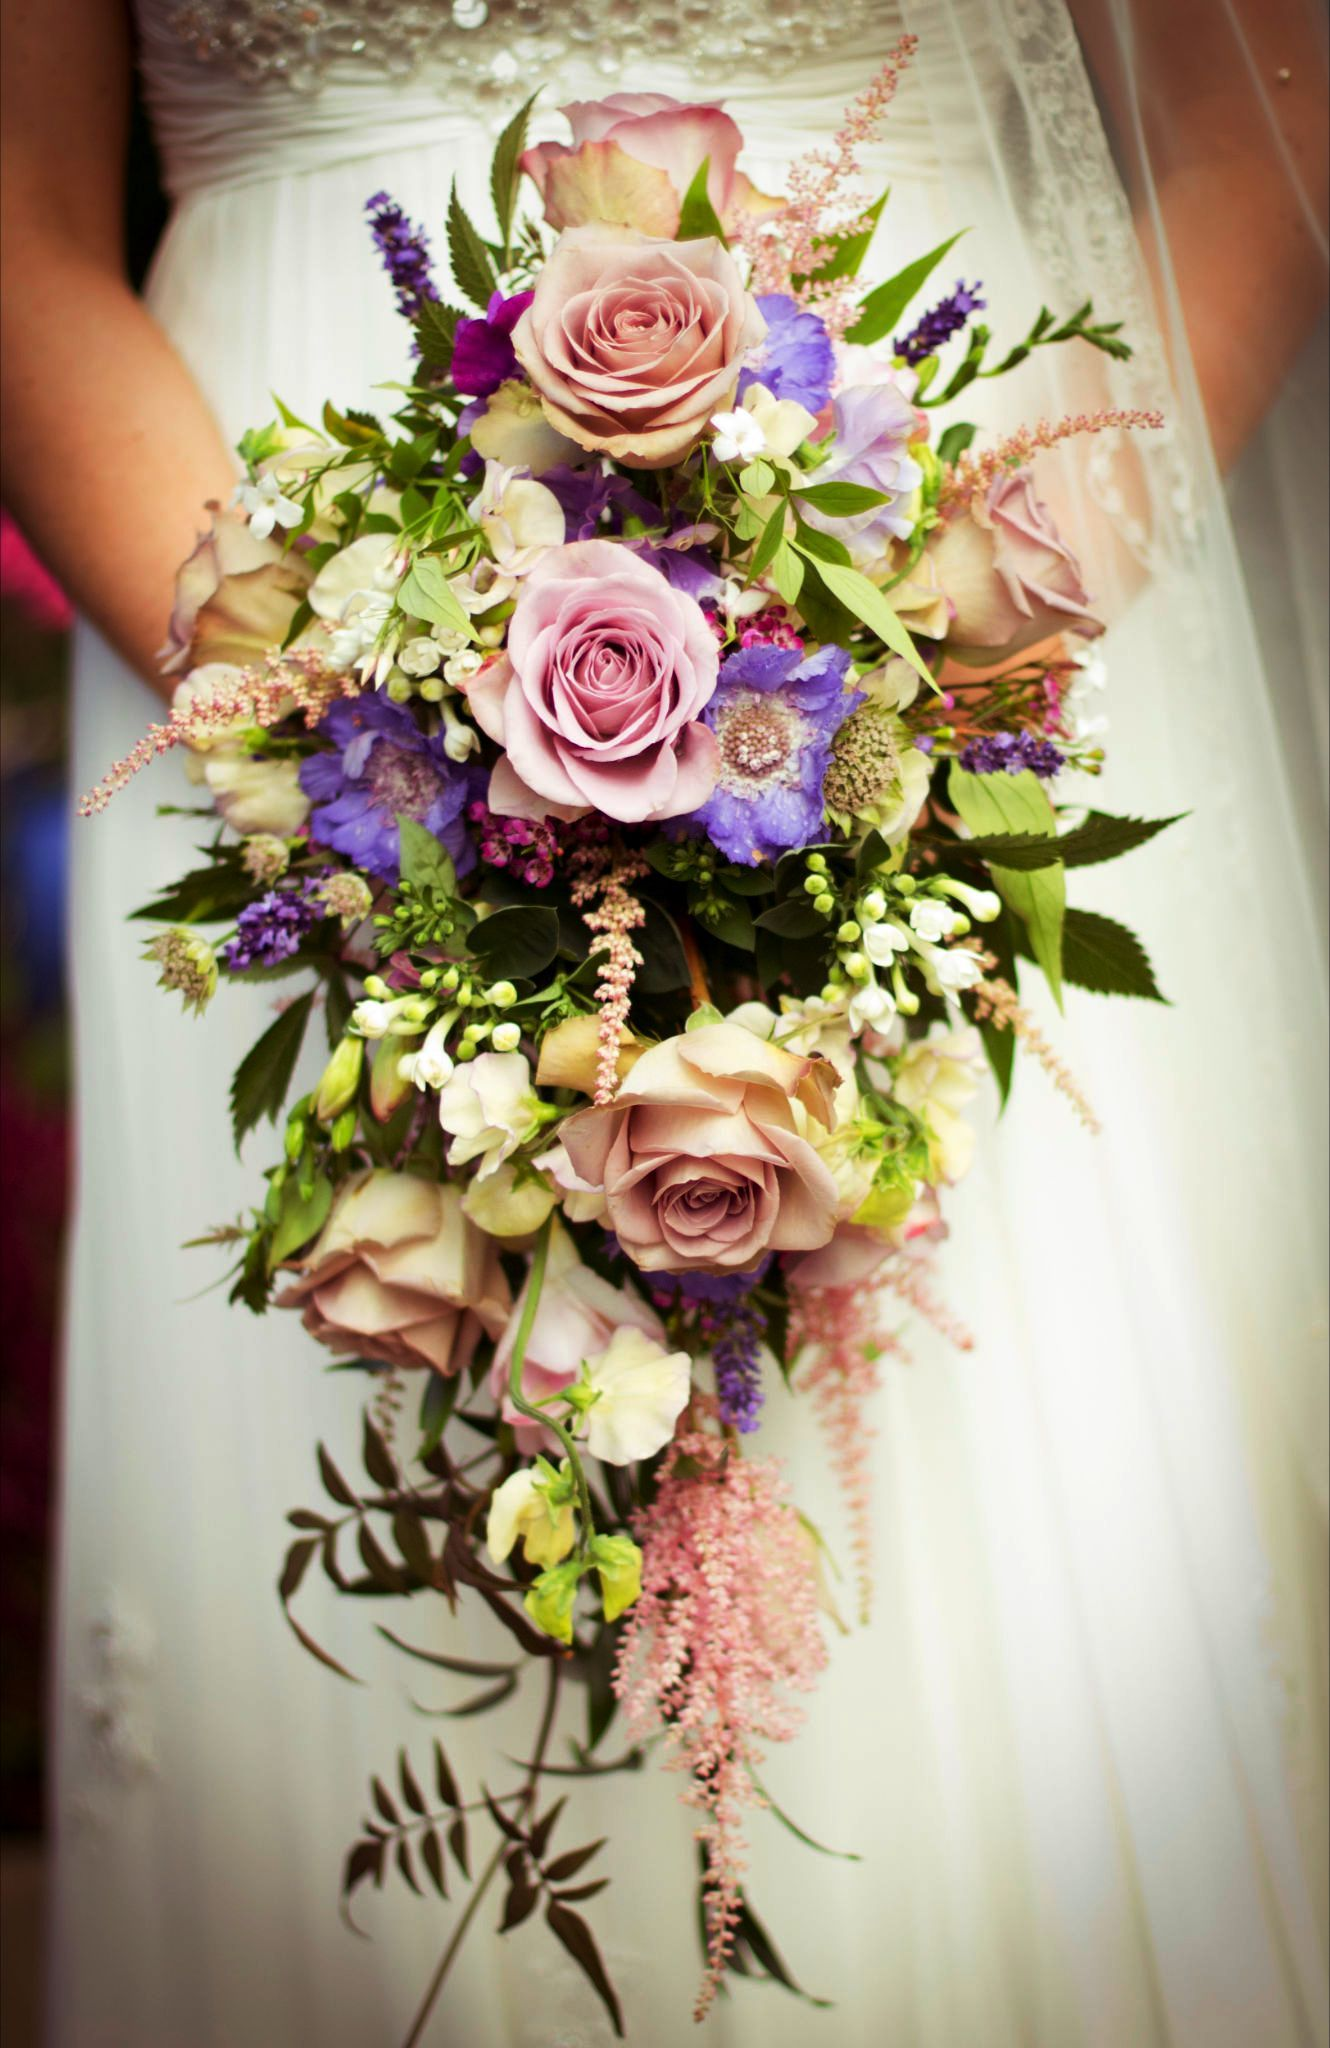 Shower bouquet with Memory Lane Roses and mixed summer